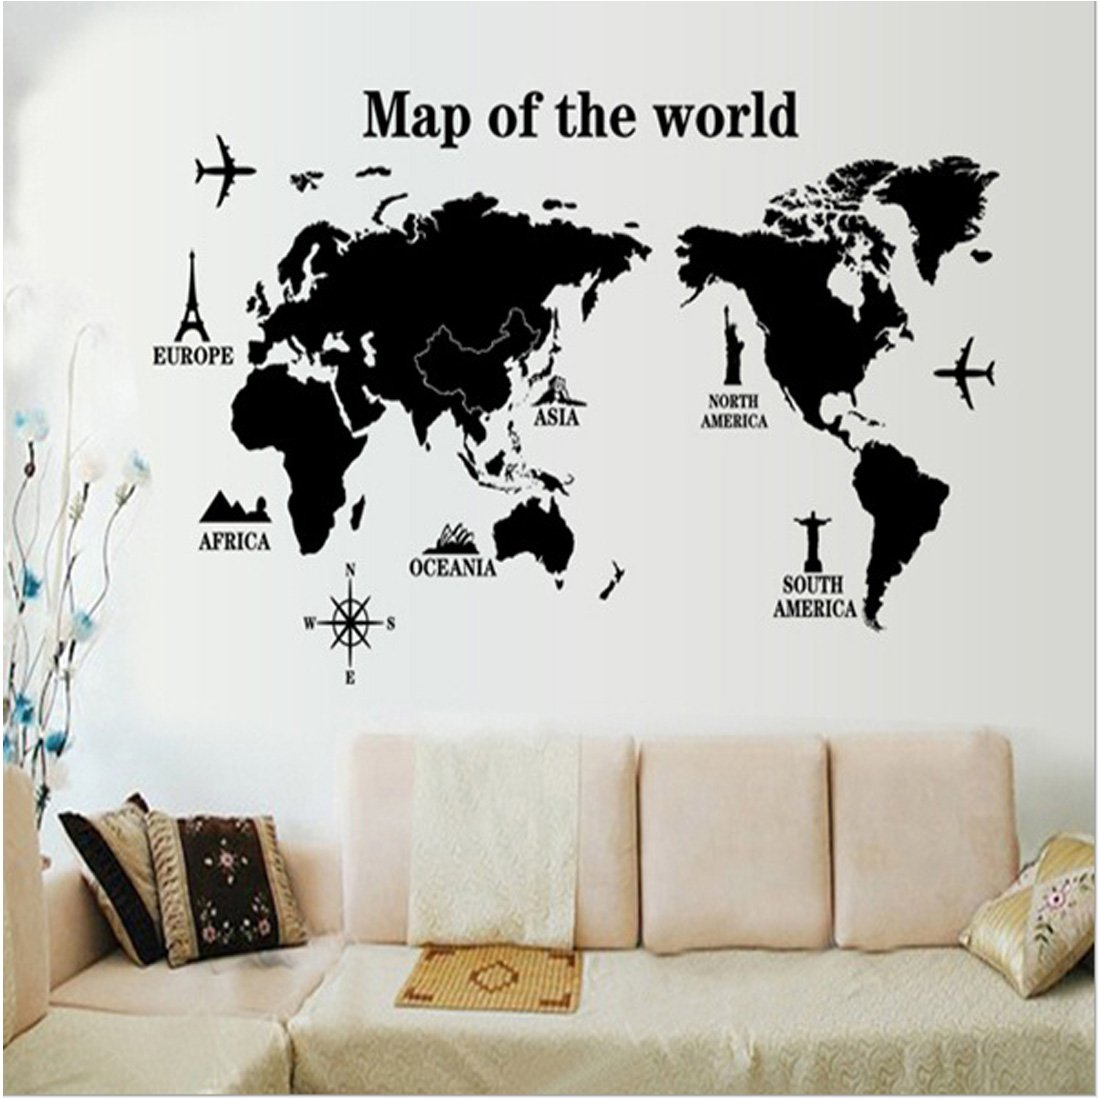 3d world map wall decals stickers home living room decoration diy 3d world map wall decals stickers home living room decoration diy art mural gumiabroncs Image collections